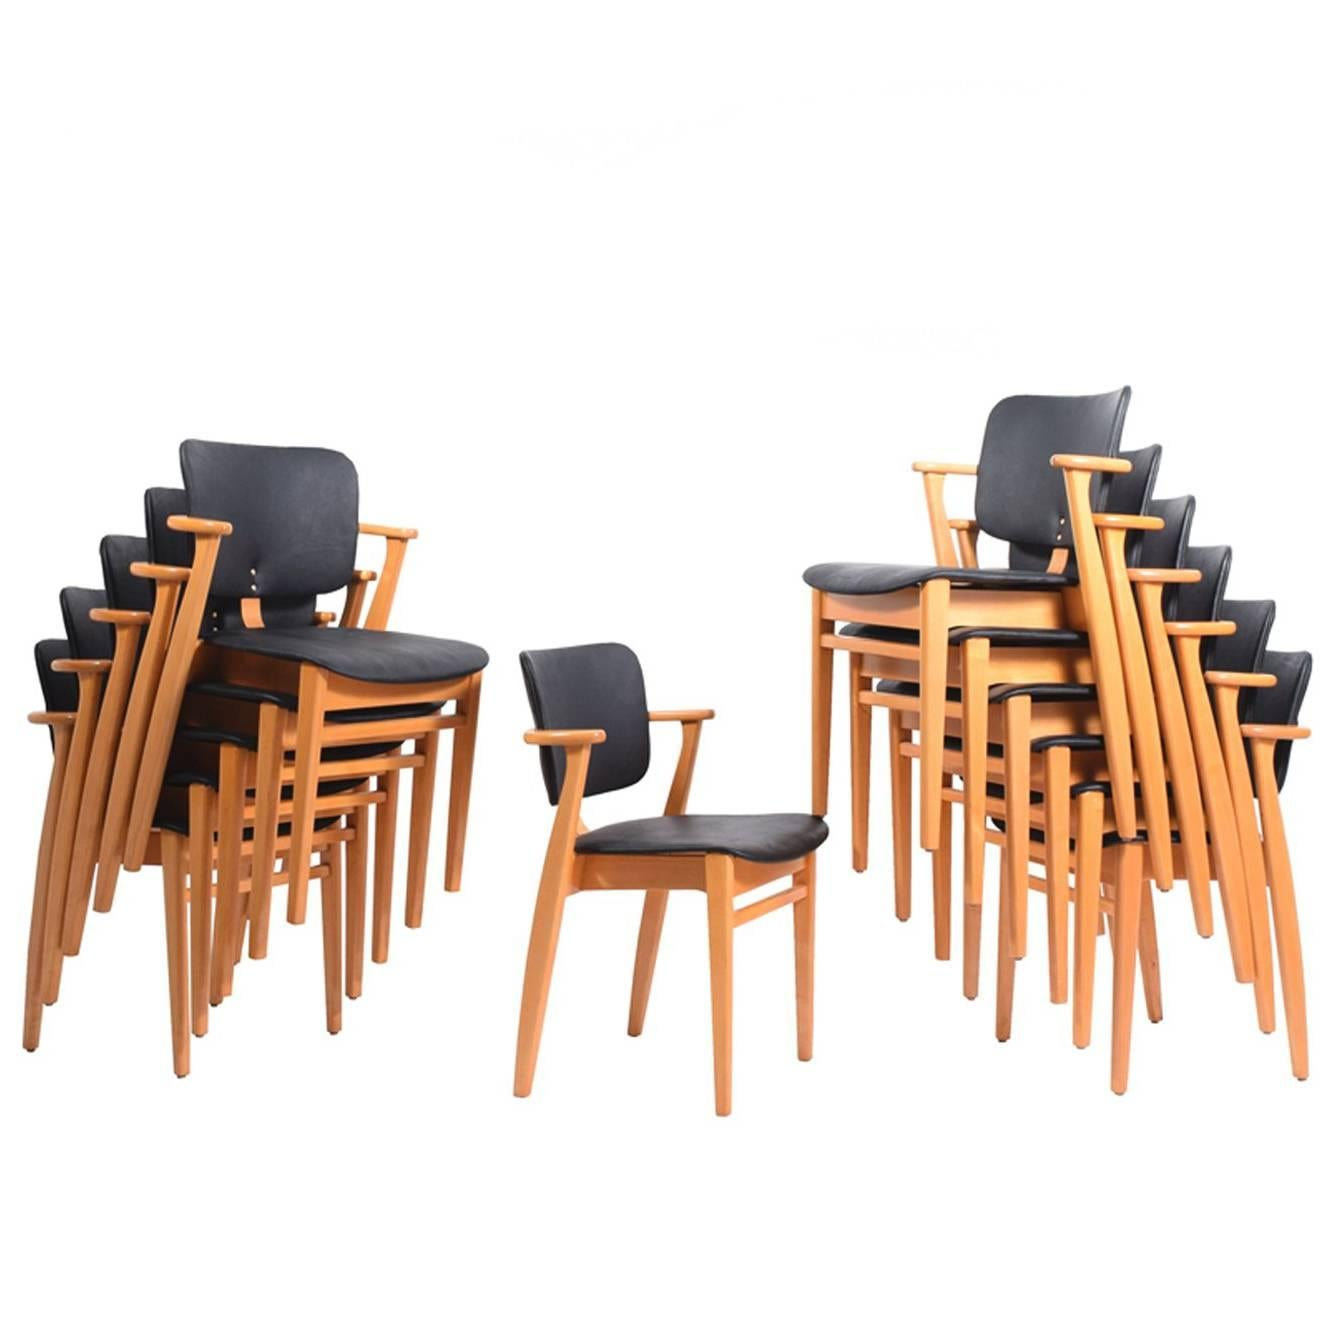 "12 Ilmari Tapiovaara ""Domus"" Armchairs for Knoll Associates"